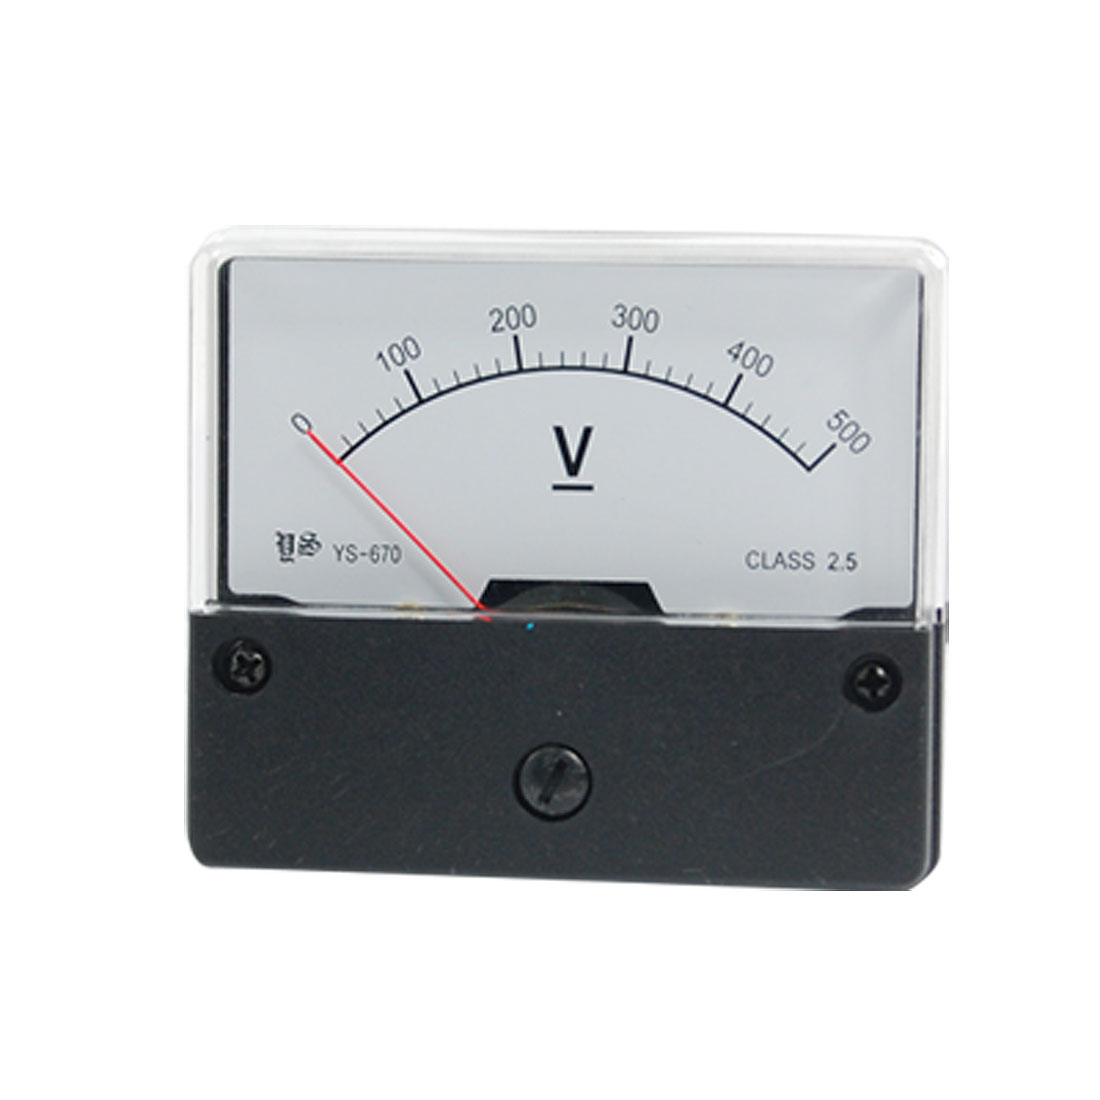 YS-670 DC 0-500V Panel Mount Meter Analog Voltmeter Gauge